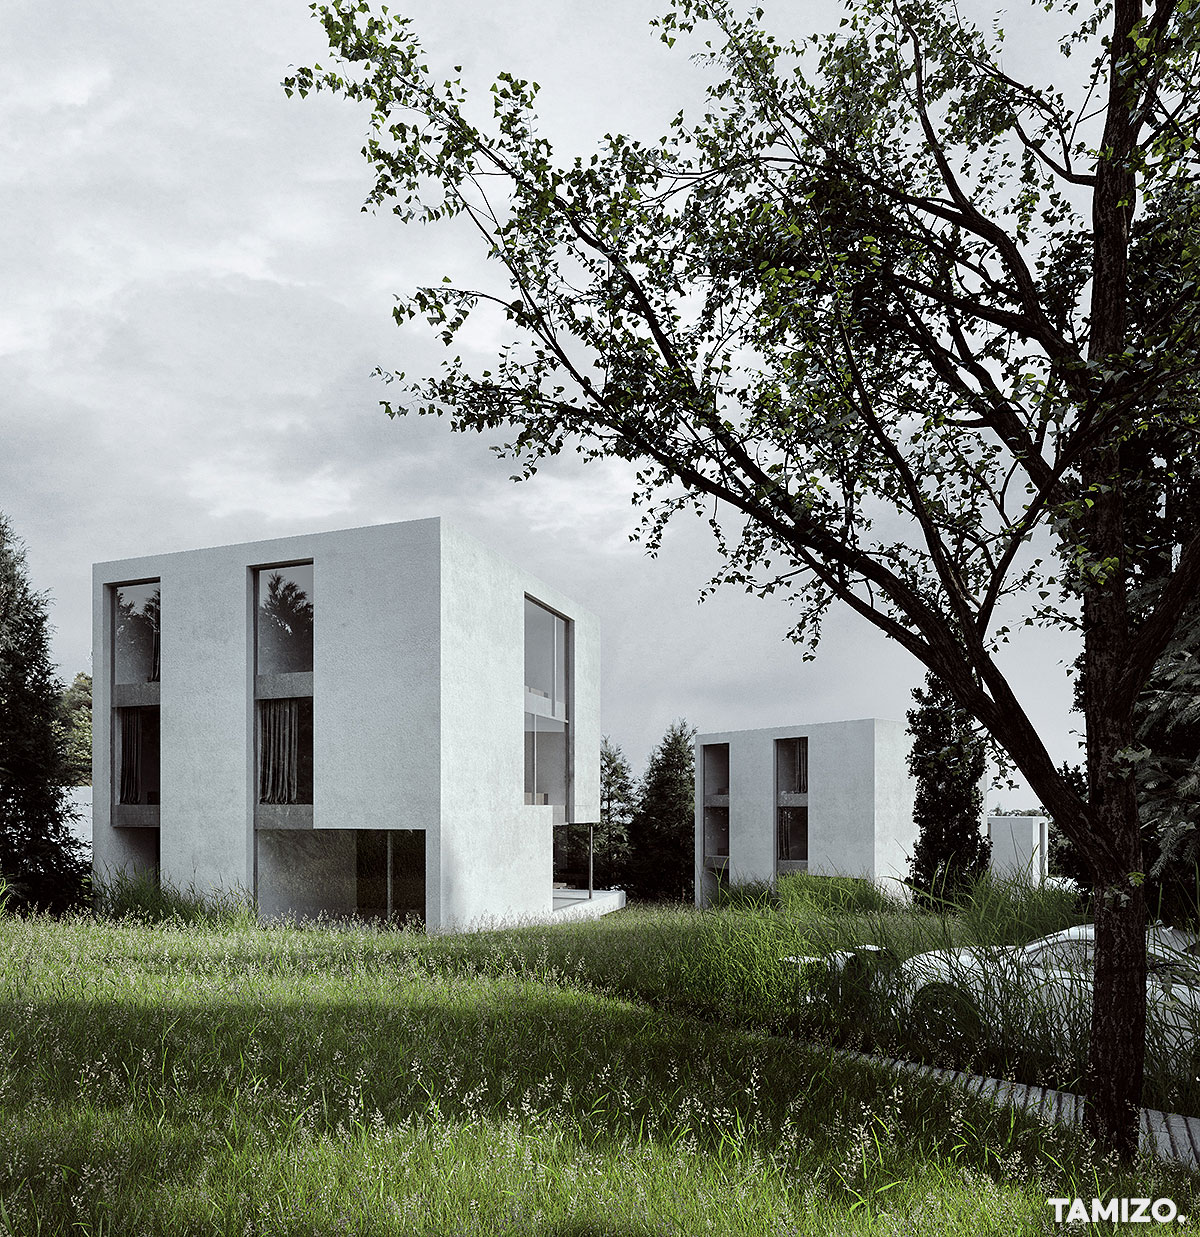 A061_tamizo_architects_competition_tbilisi_georgia_multifamily_houseing_realestate_10